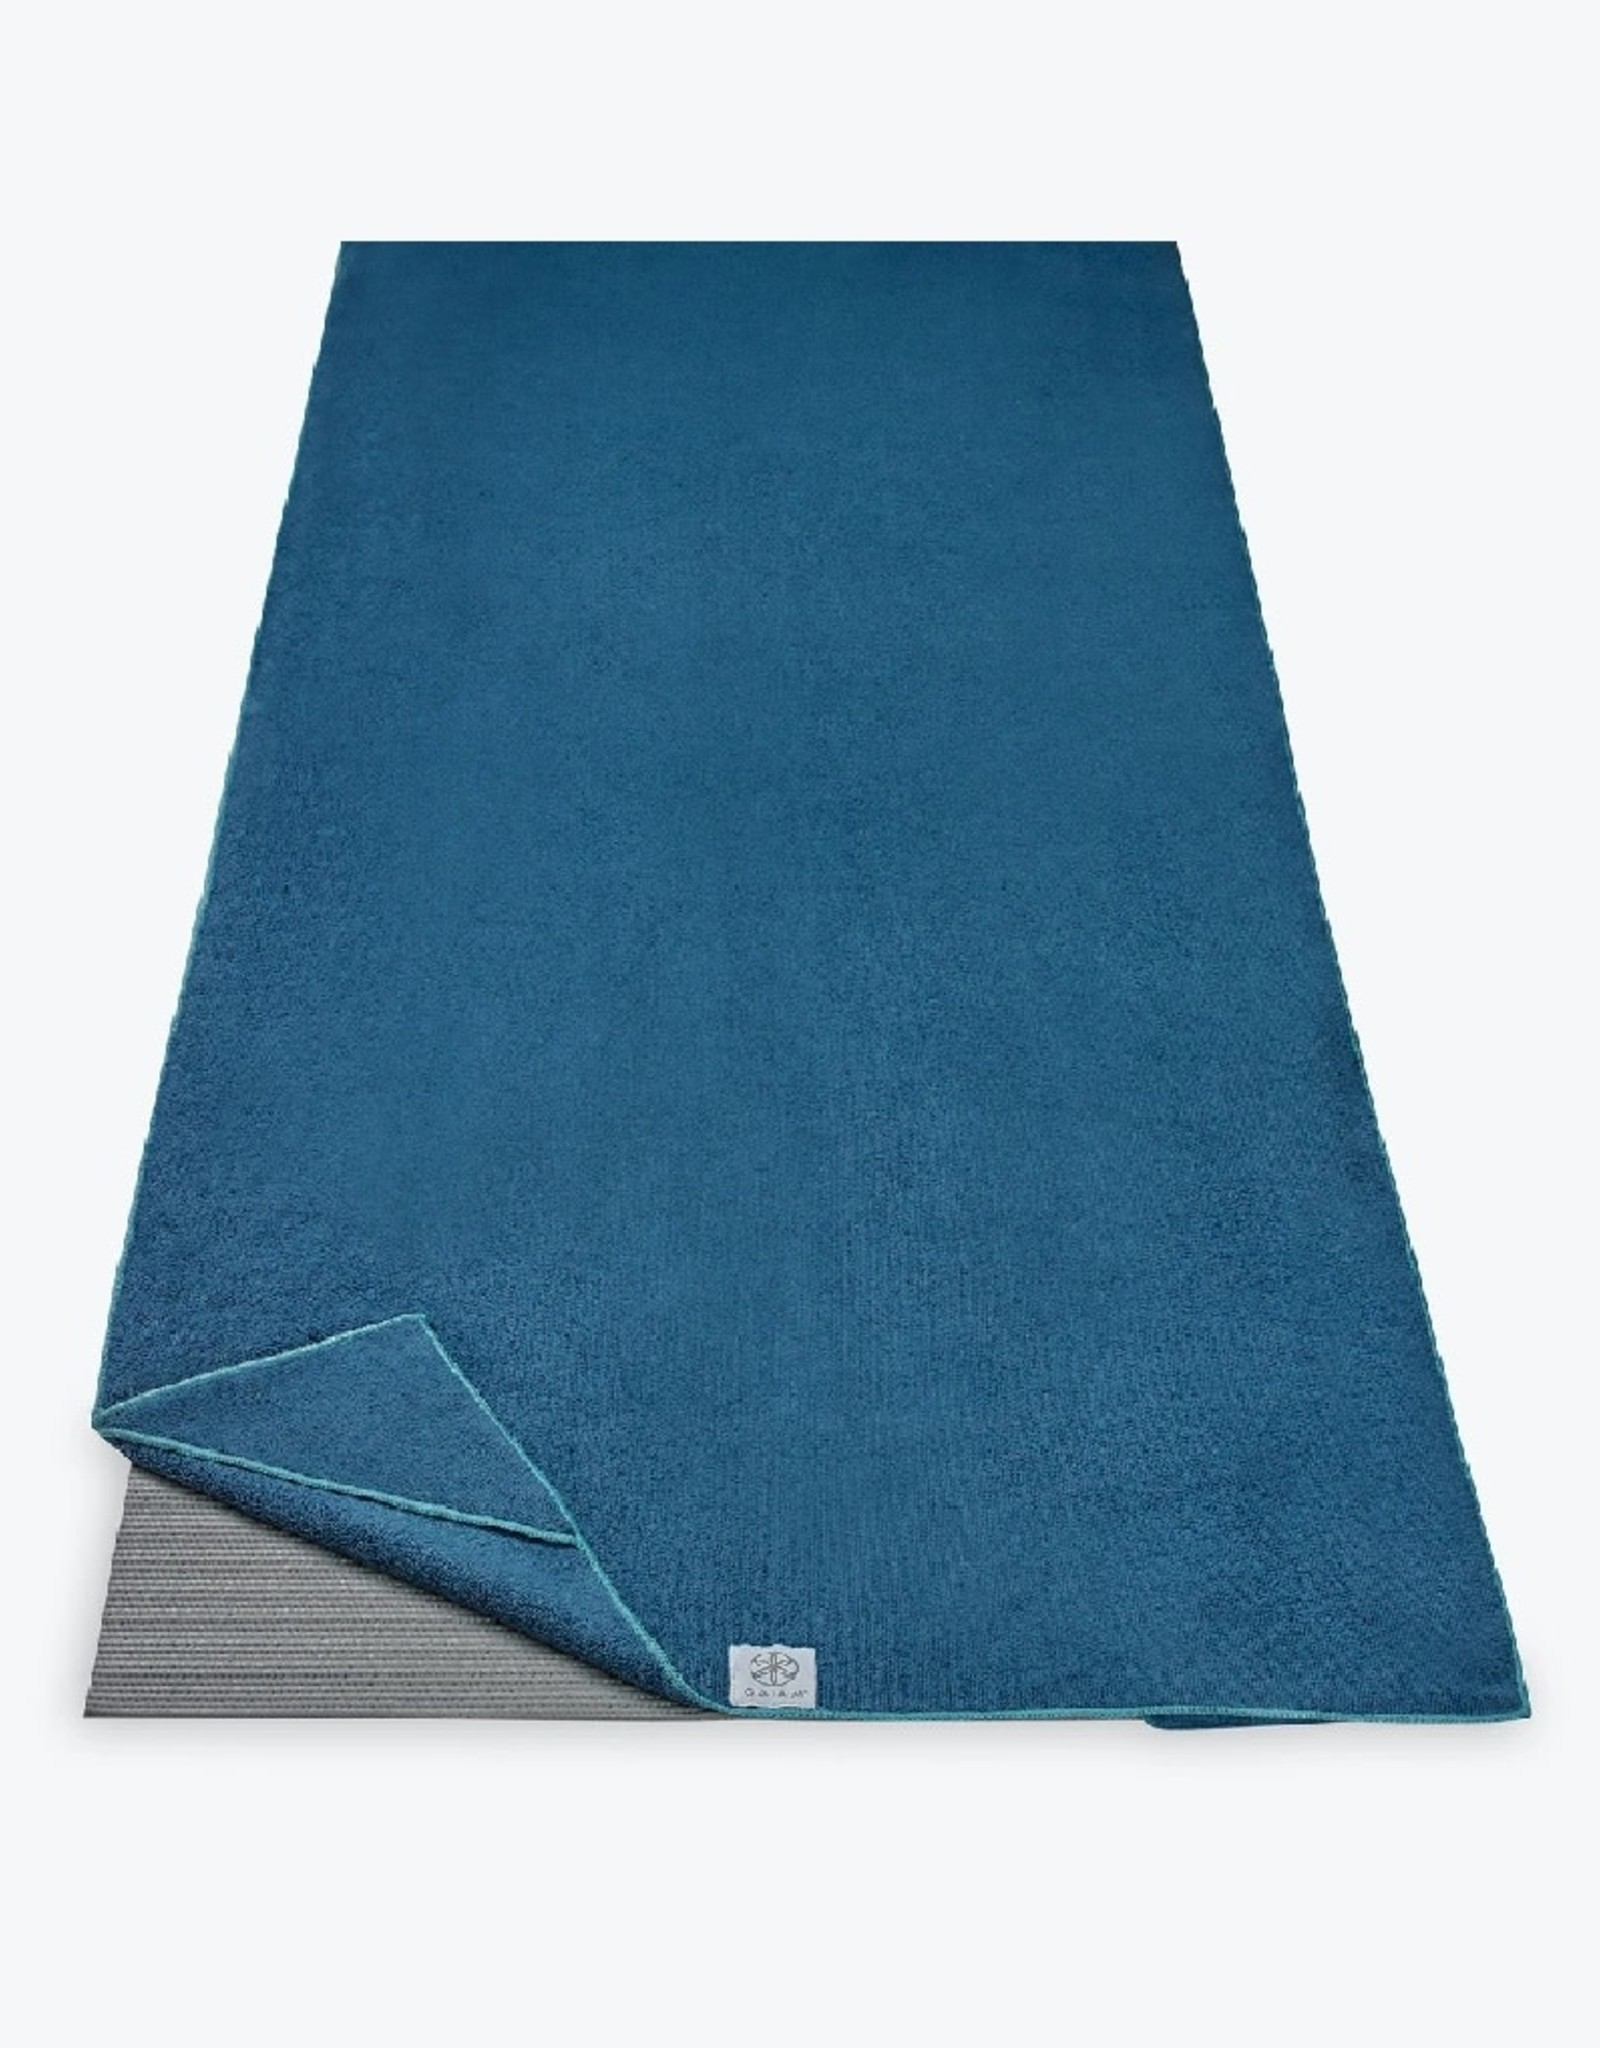 Gaiam Yoga Towel